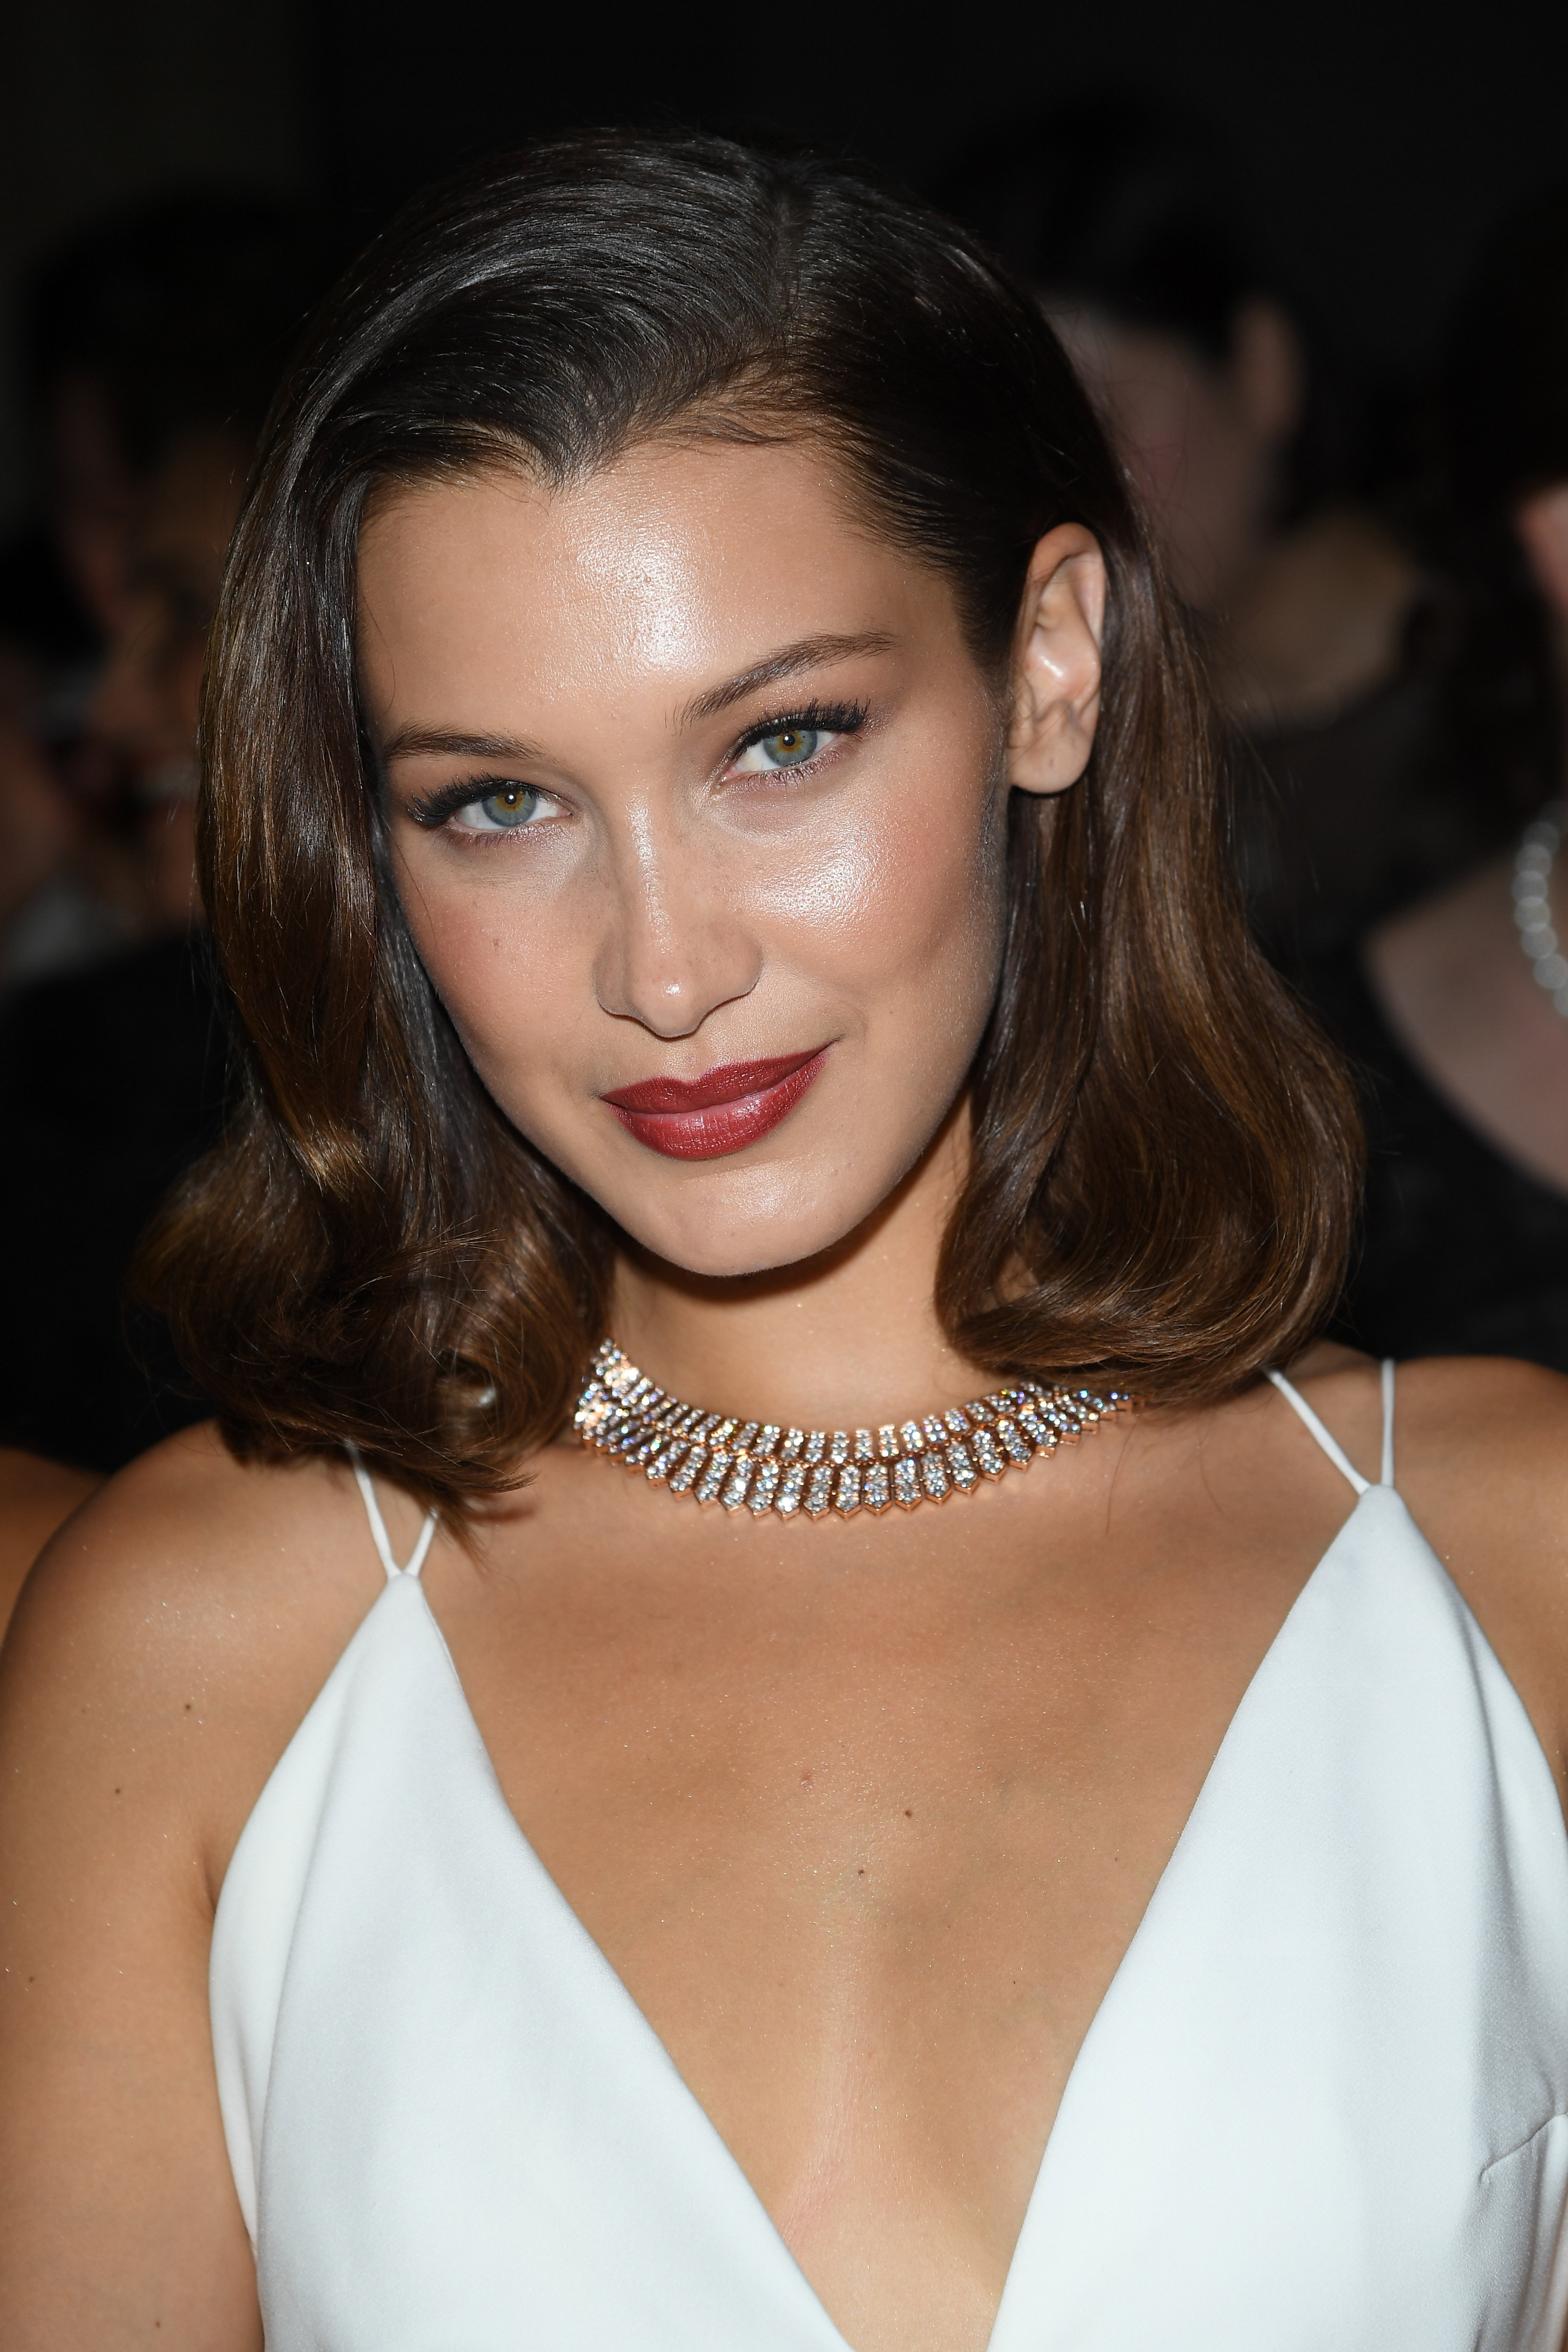 "<p>Nobody has left a bigger designer-clad shoe print on the runways and sidewalks of 2017 haute couture fashion week than model Bella Hadid.</p> <p>The 20-year-old has dazzled(sometimes quite literally) in the city of light in an array of revealing, sheer and some non-existent outfits.</p> <p>And we just can't get enough. </p> <p>Bulgari jewels, sheer tops, high-slit gowns and metallic gold hair are just some of the arresting items Bella has rocked during her fashion week extravaganza.</p> <p>The younger Hadid sister has been a force on the runway,<a href=""https://style.nine.com.au/2017/07/05/09/13/style_alexandre-vauthier-haute-couture-show"" target=""_blank"">walking for designers Alexandre Vauthier,</a> Fendi and Maison Margiela and dripping in diamonds on the streets of Paris and Venice for her off-duty appearances.</p> <p>Click through to see the best of Bella Hadid at this year's haute couture fashion week.</p>"